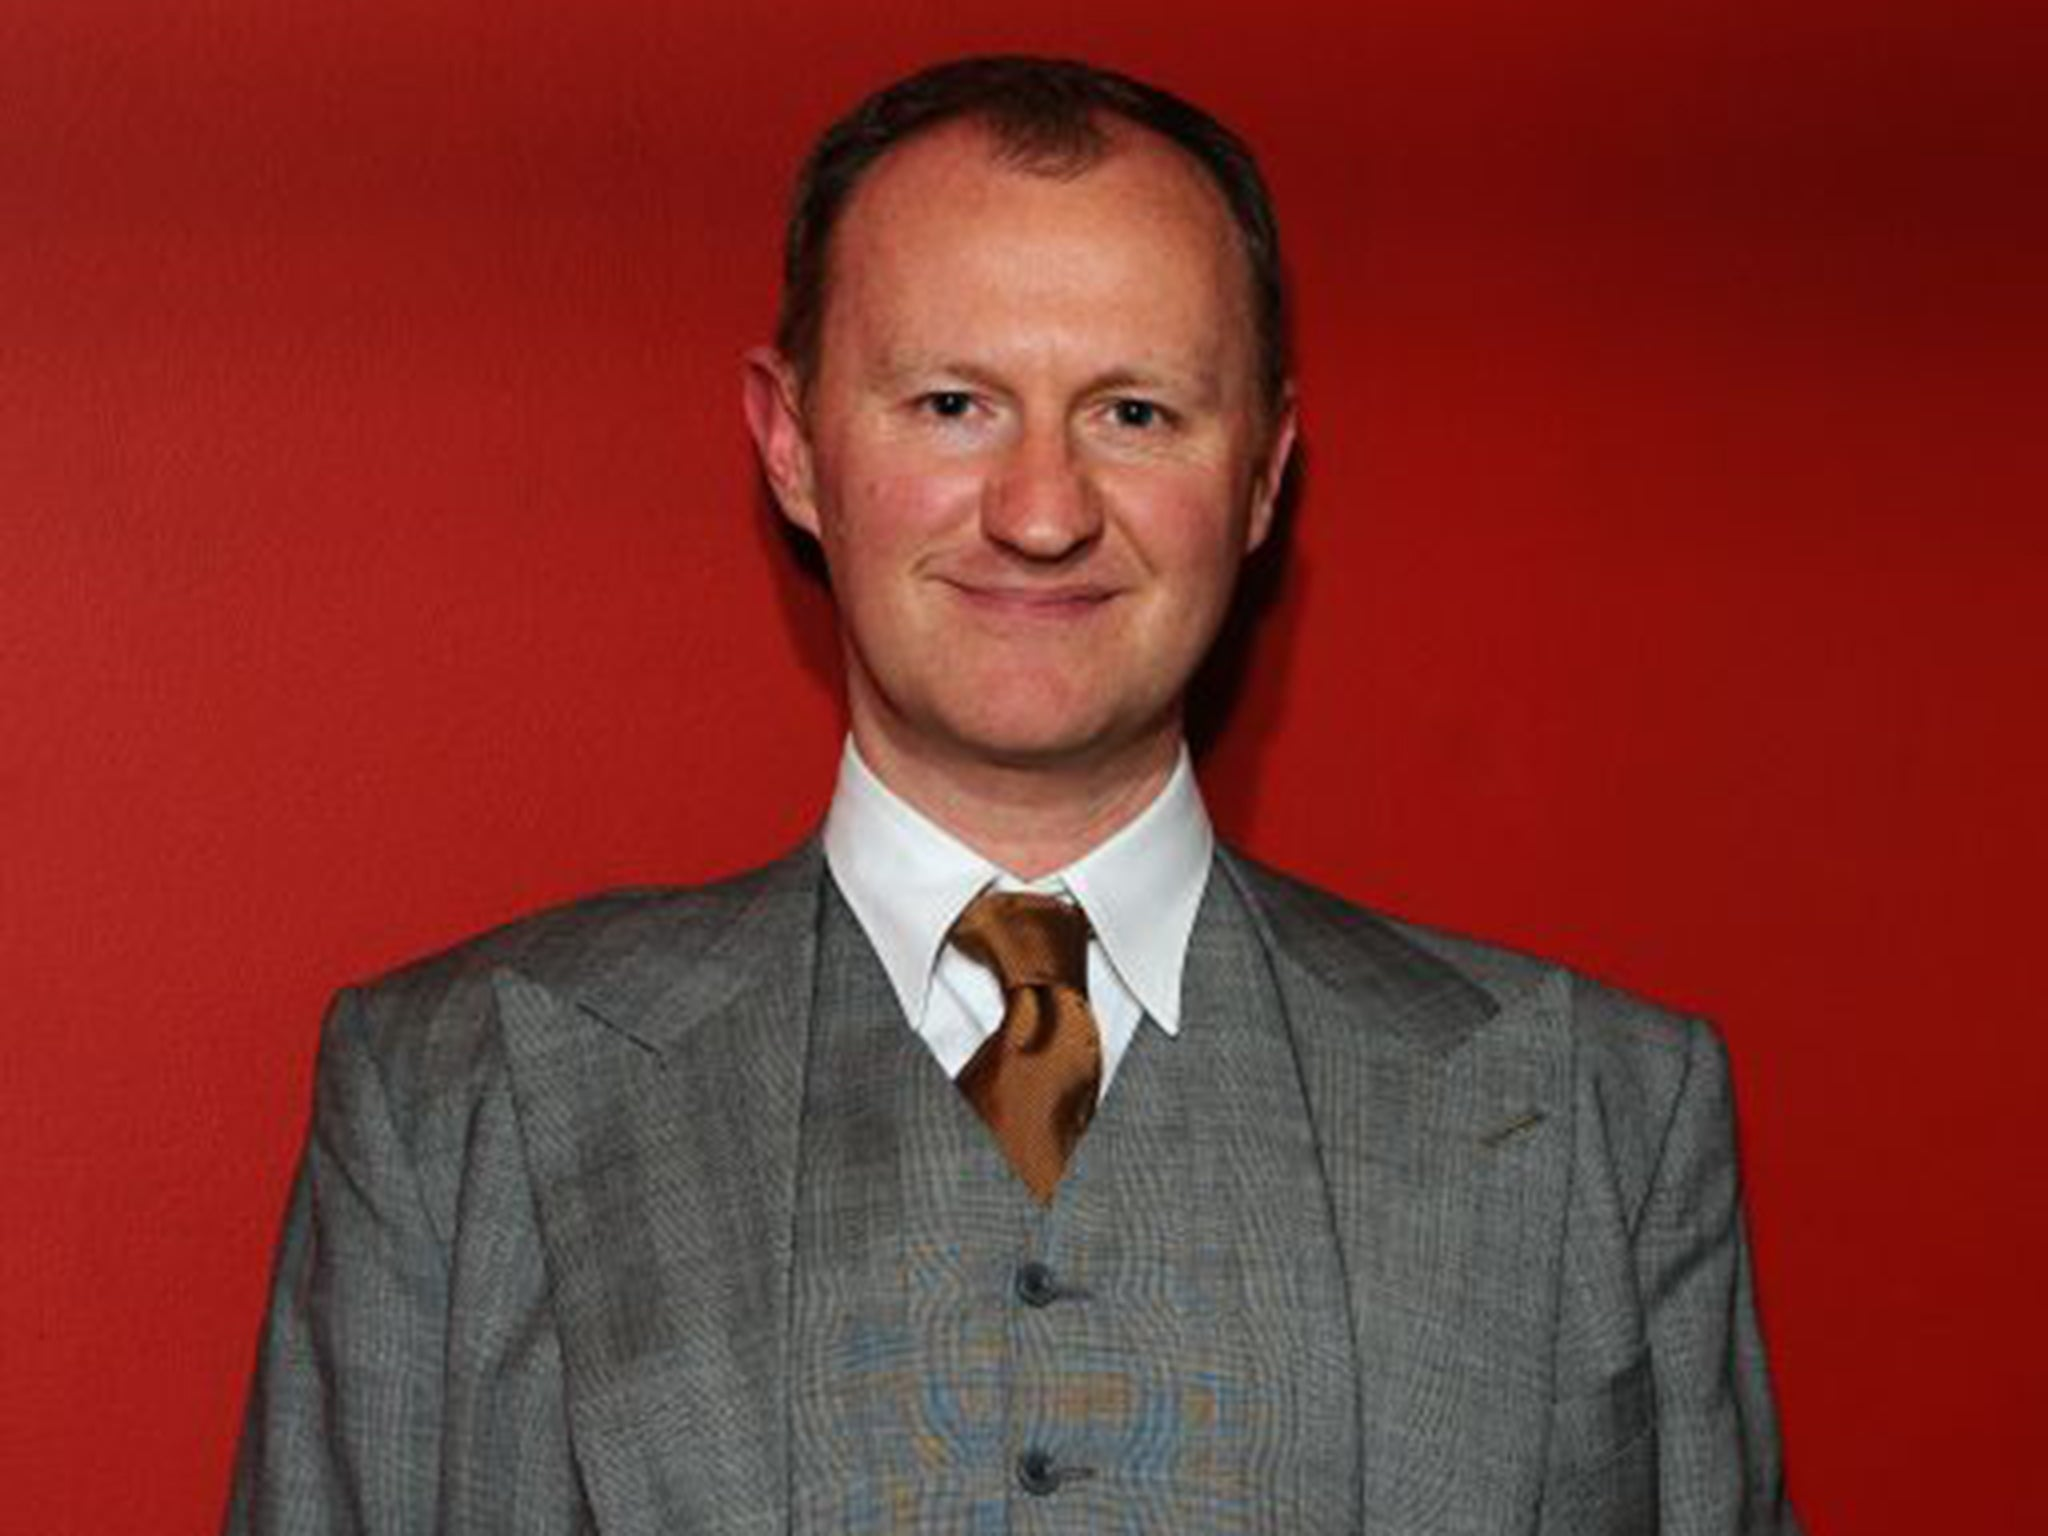 mark gatiss and ian hallard weddingmark gatiss young, mark gatiss doctor who, mark gatiss with husband, mark gatiss height, mark gatiss wedding, mark gatiss and steven moffat, mark gatiss tumblr, mark gatiss vk, mark gatiss twitter, mark gatiss gif, mark gatiss sherlock, mark gatiss interview, mark gatiss and ian hallard wedding, mark gatiss video diary, mark gatiss википедия, mark gatiss poem, mark gatiss кинопоиск, mark gatiss son, mark gatiss insta, mark gatiss books